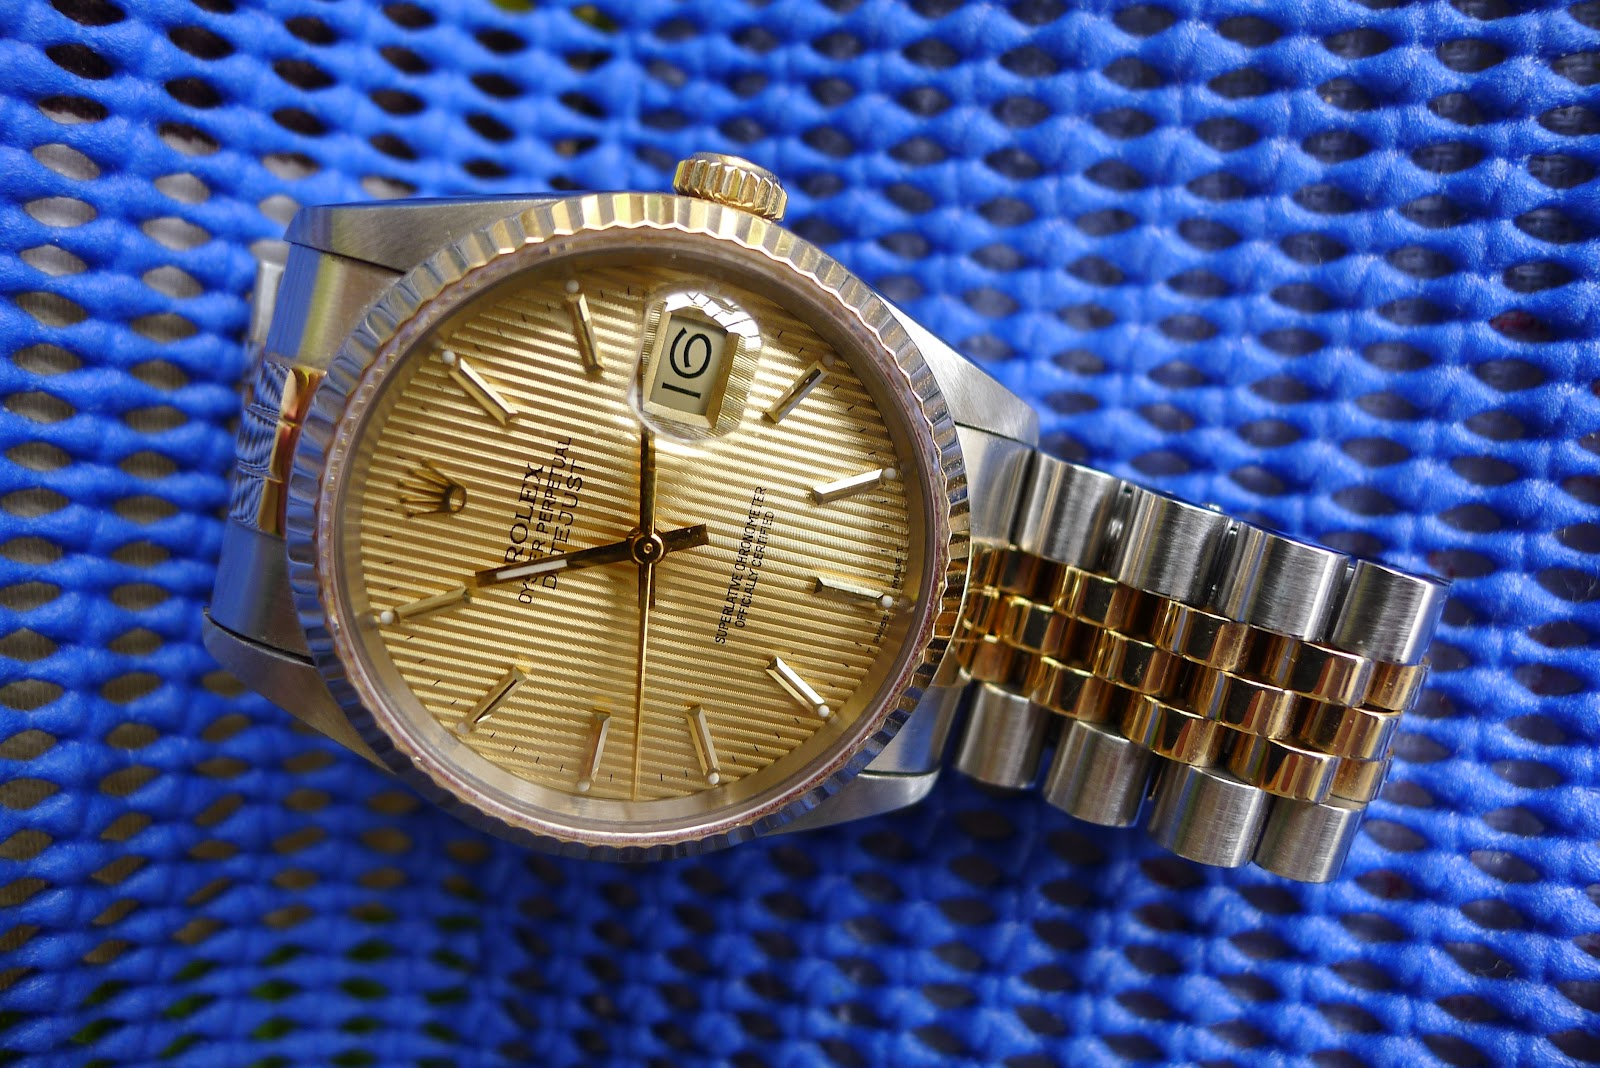 8041ee49b7521 Second Hand Mens Rolex Watches For Sale - cheap watches mgc-gas.com